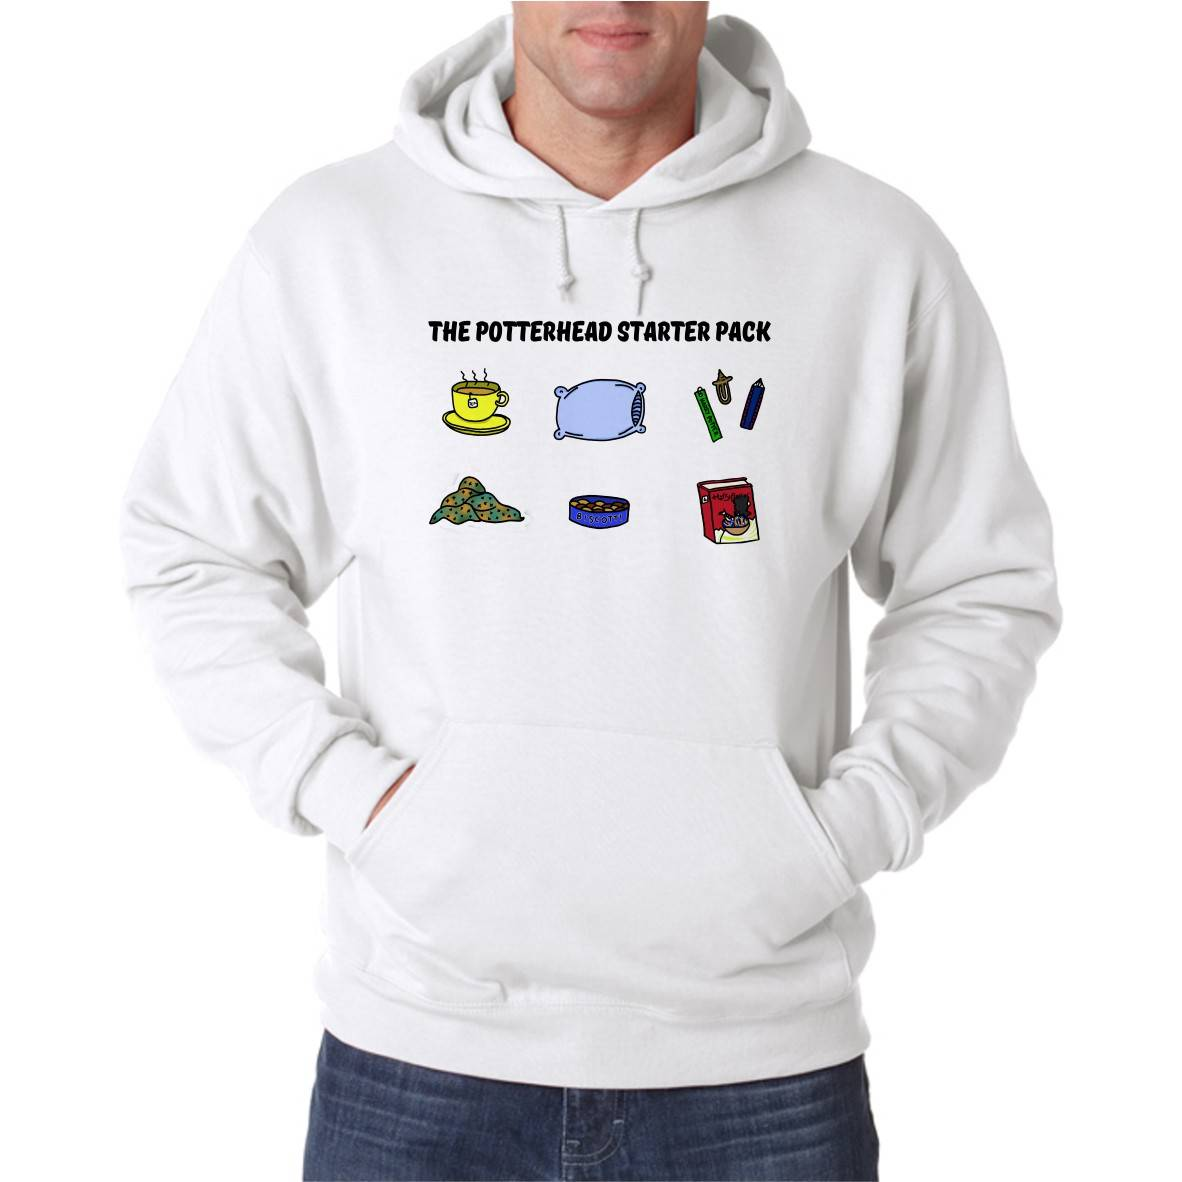 POTTERHEAD STARTER PACK UNISEX HOODED